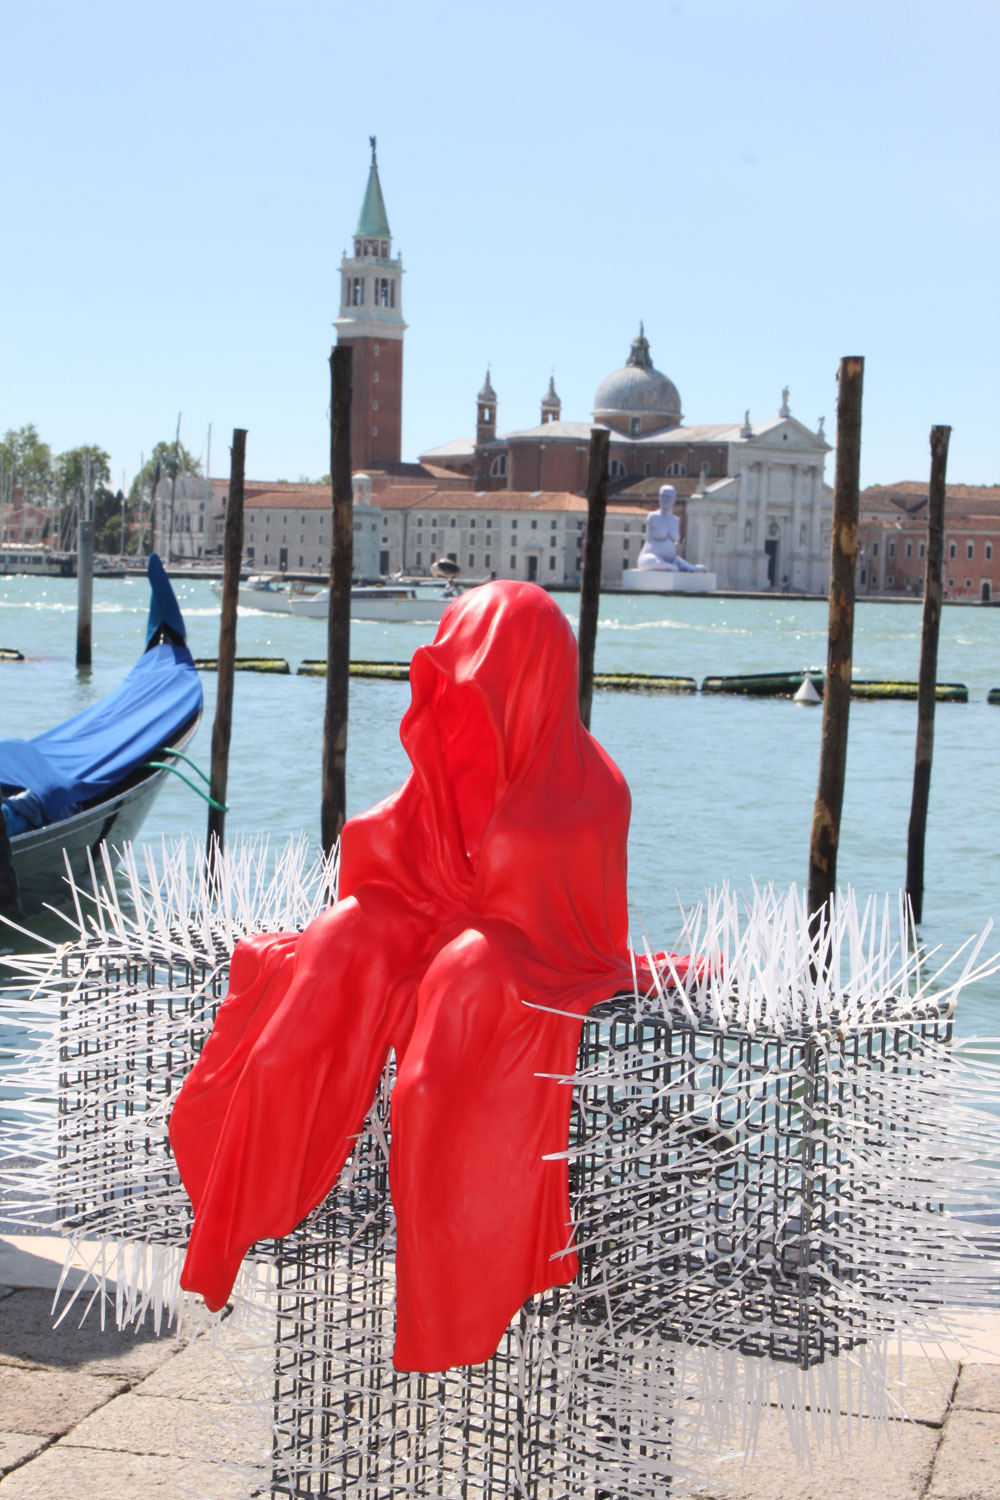 public-show-art-biennial-venice-italy-christoph-luckeneder-manfred-kielnhofer-t-guardian-sculpture-art-arts-arte-2730